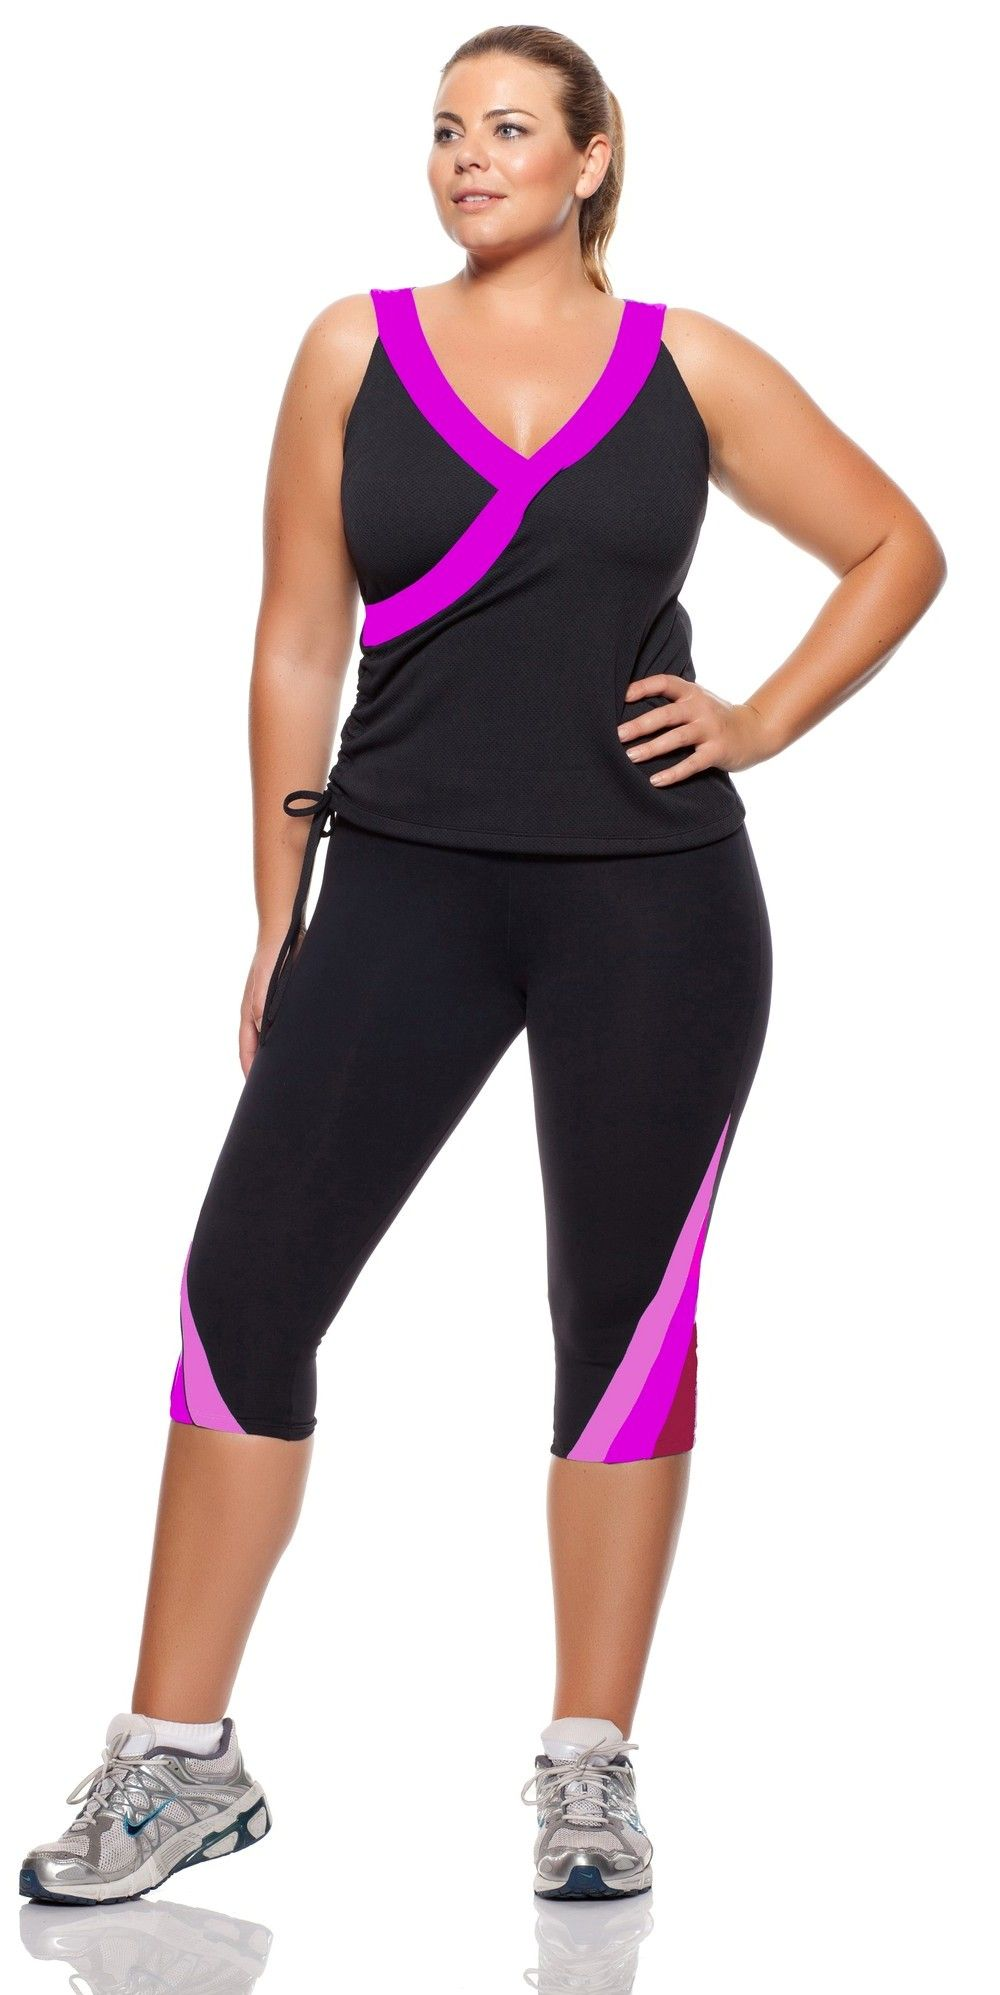 886aee4e This page provides tips and guide on The plus size workout clothes target.  It's best resources for The plus size workout clothes target.